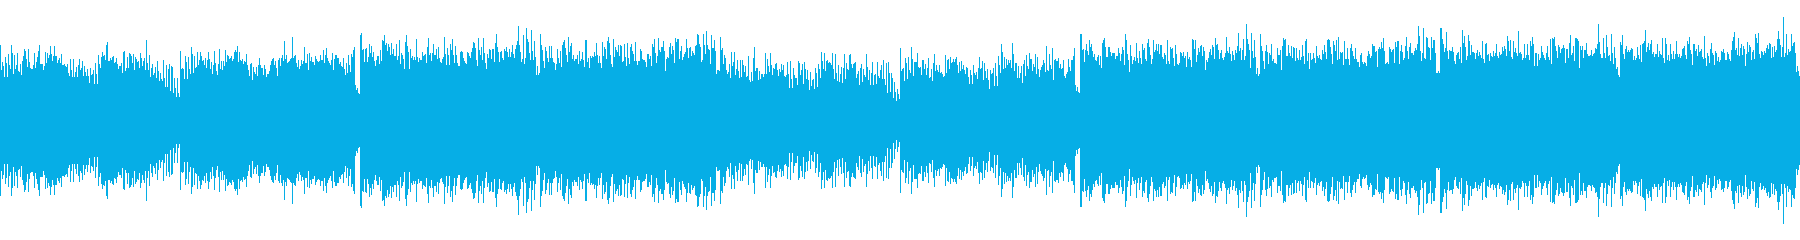 Loops, movies, sad acoustic pops's reproduced waveform